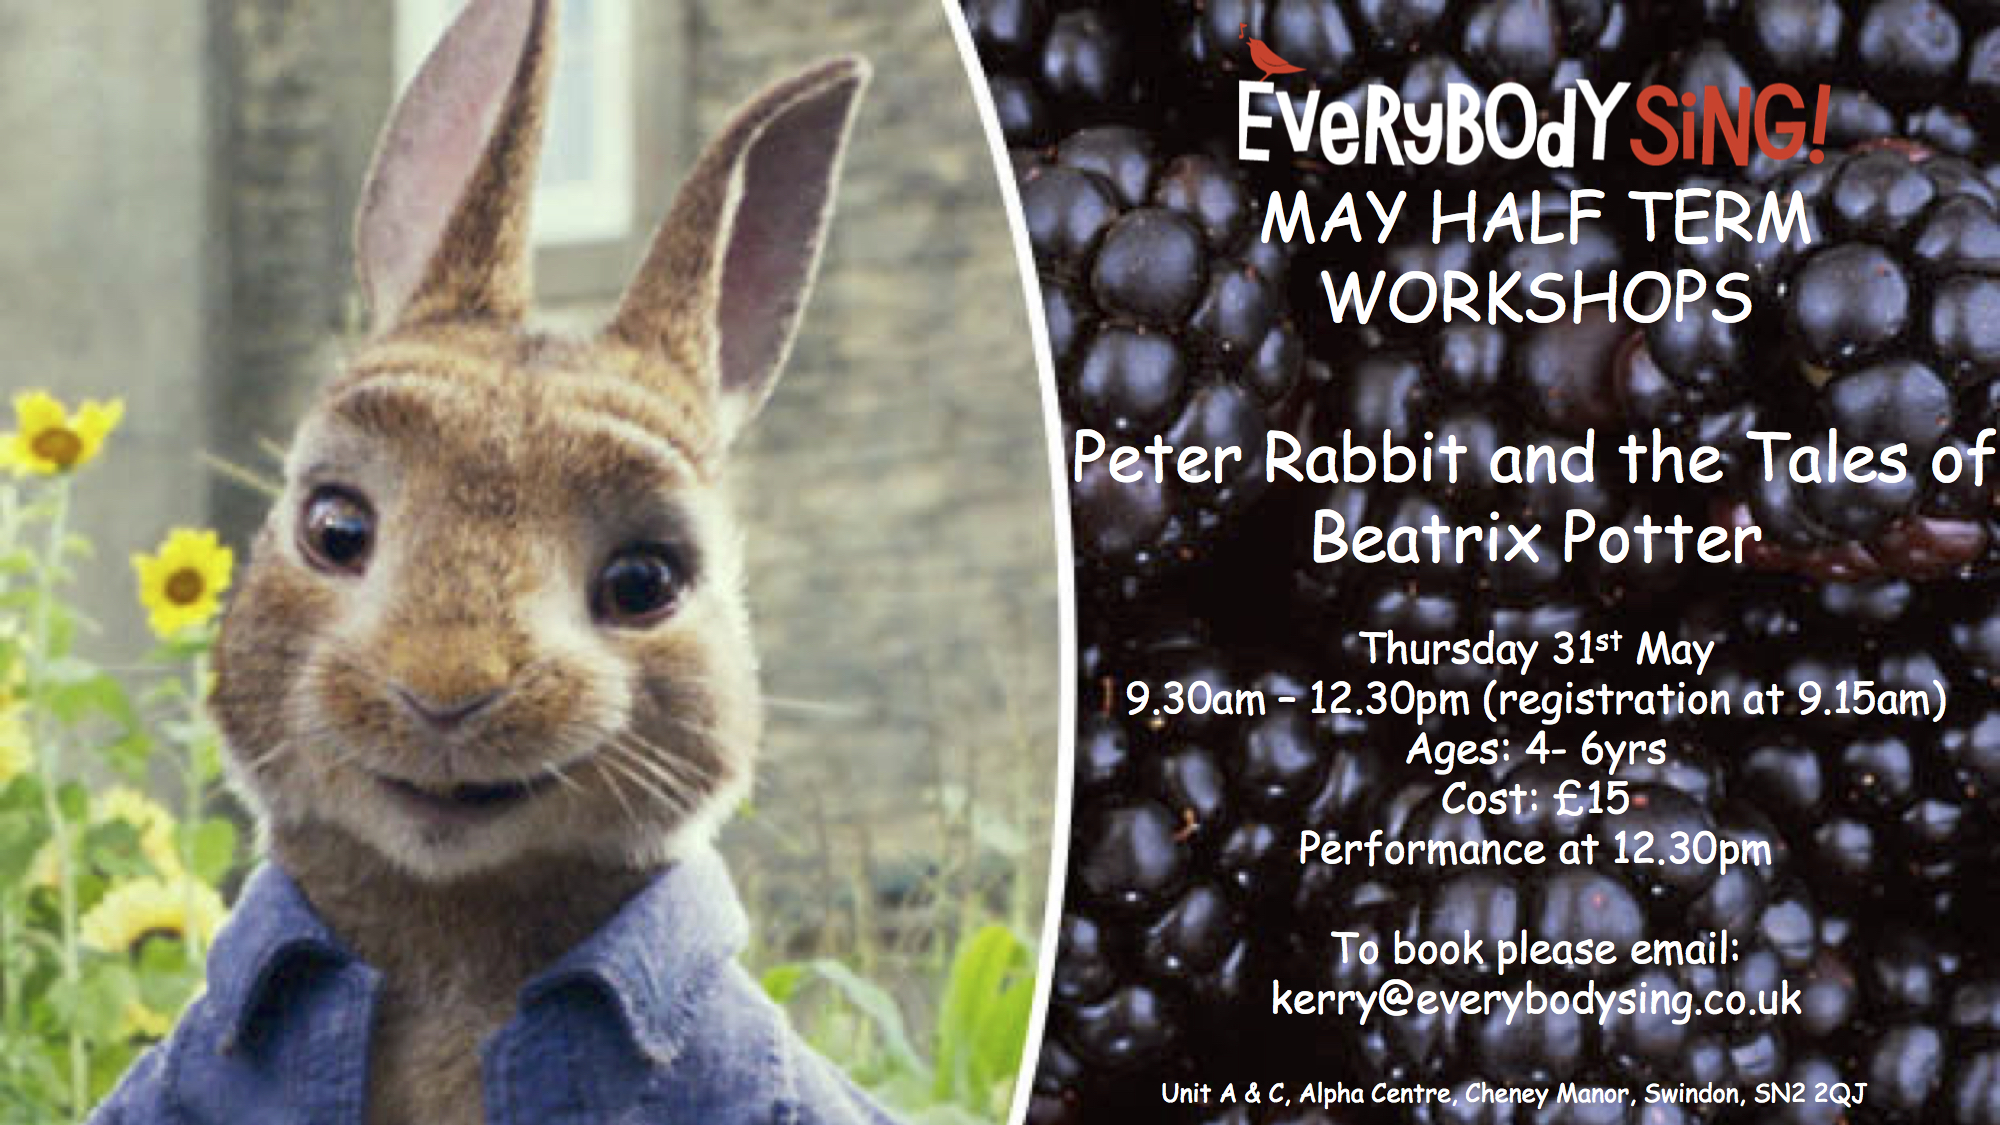 Musical Theatre Workshop  - Peter Rabbit & the tales of Beatrix Potter